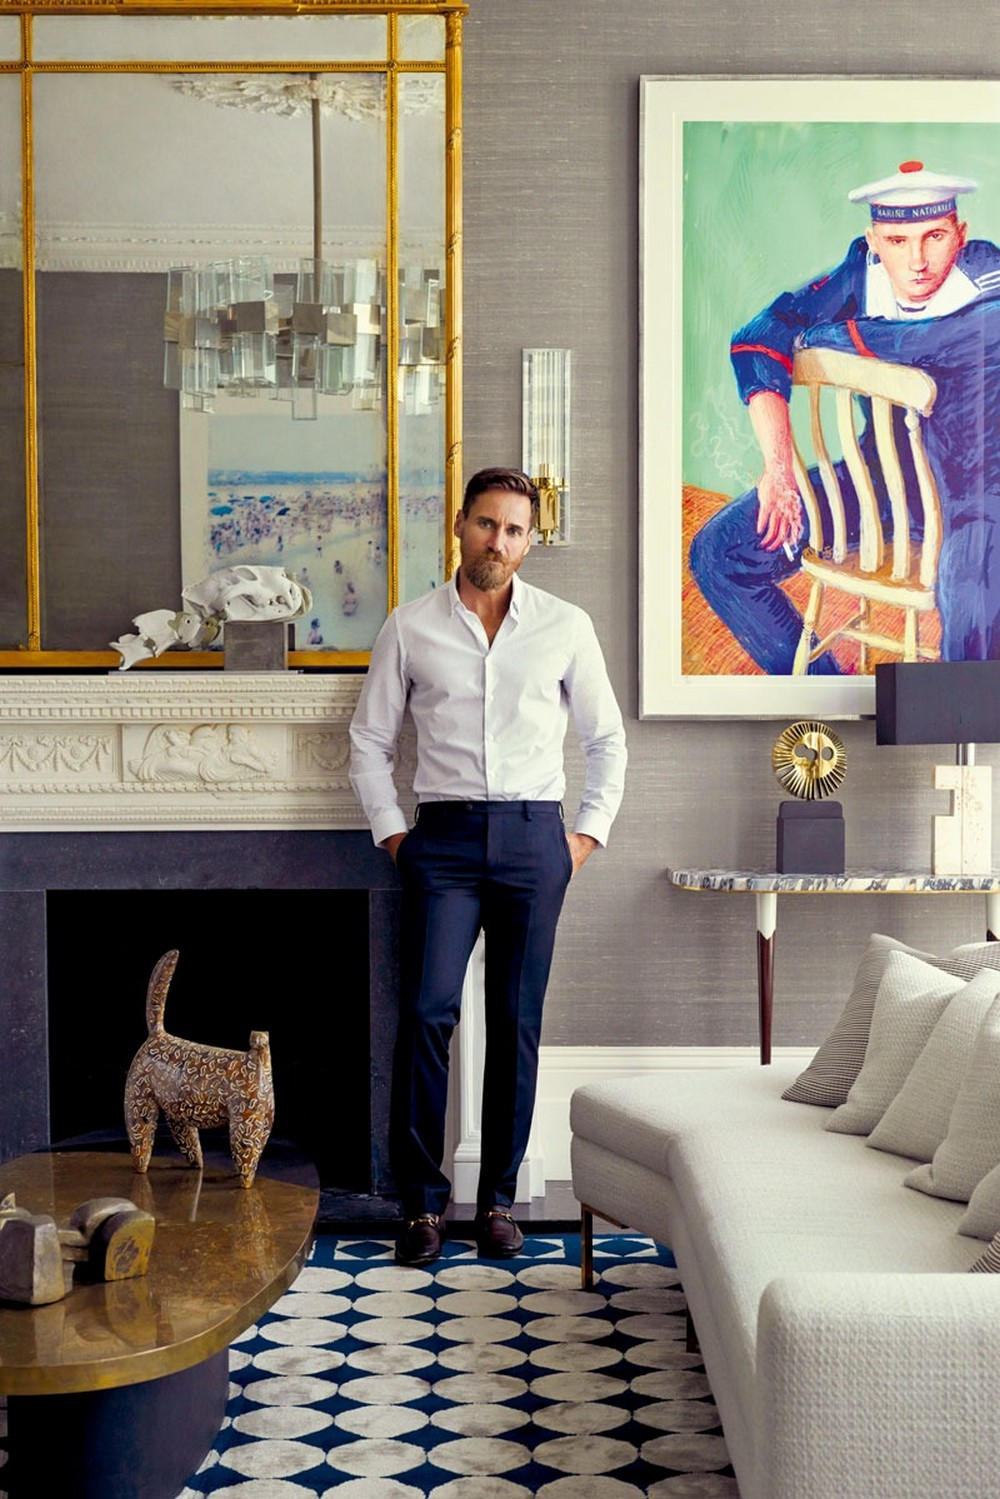 best interior designers Best Interior Designers: See Who's In This Year's Top 100 (Part II) Best Interior Designers See Whos In This Years Top 100 Part II 48